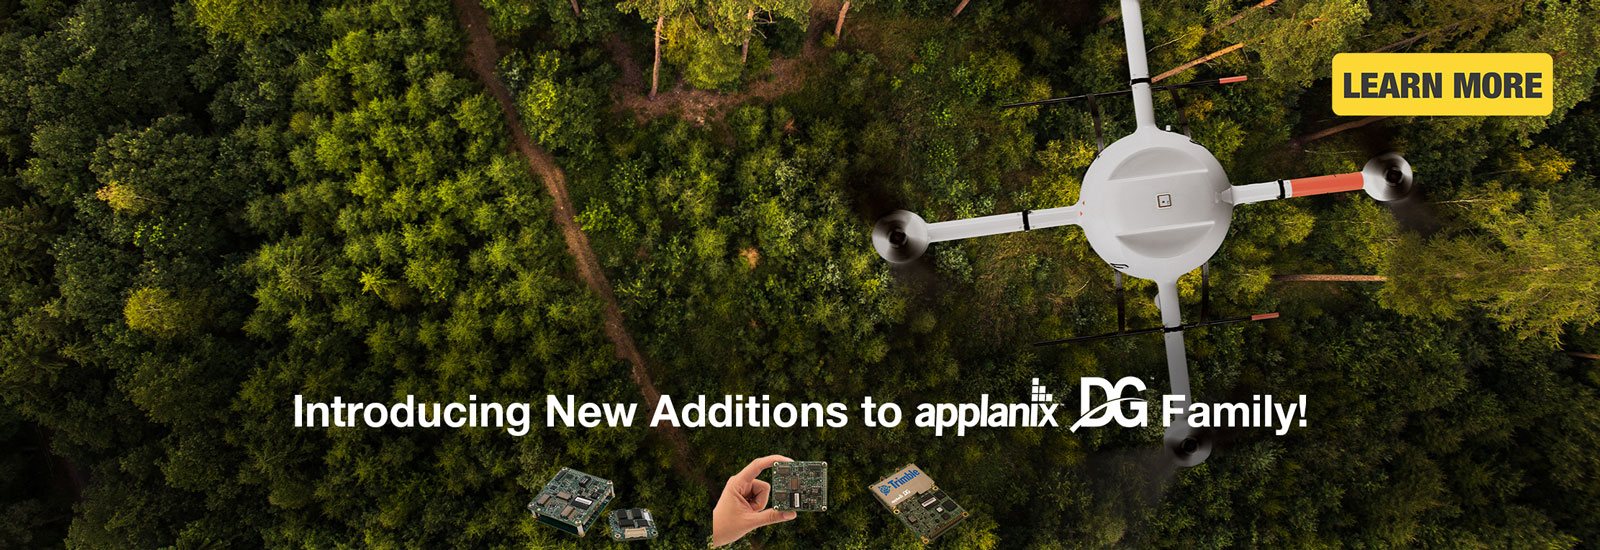 Introducing New Additions to Applanix DG Family